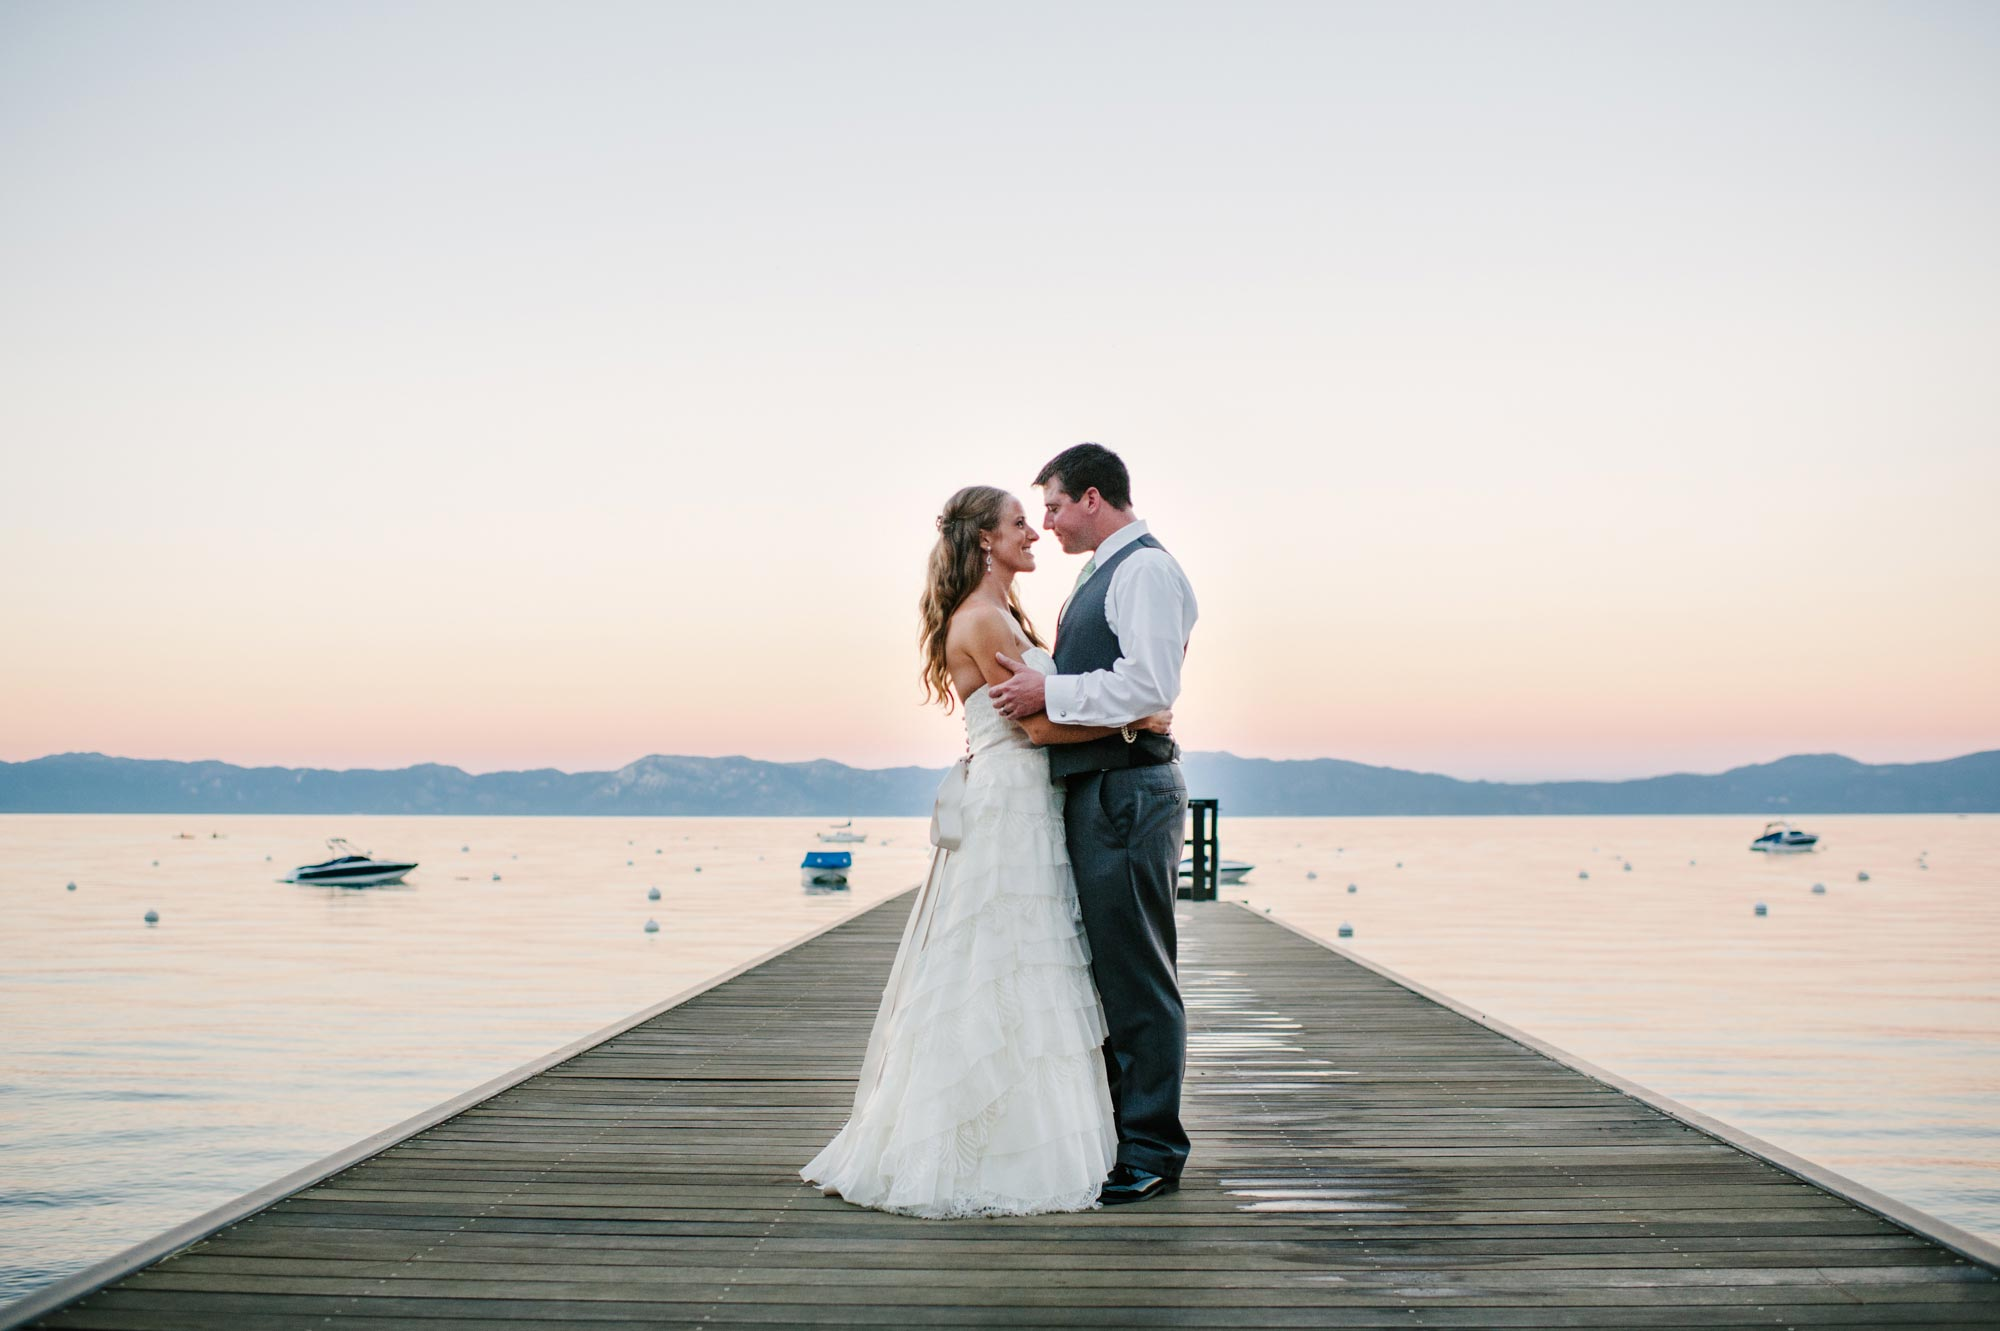 Bride And Groom On The Dock In Lake Tahoe Wedding Photography By Pictilio